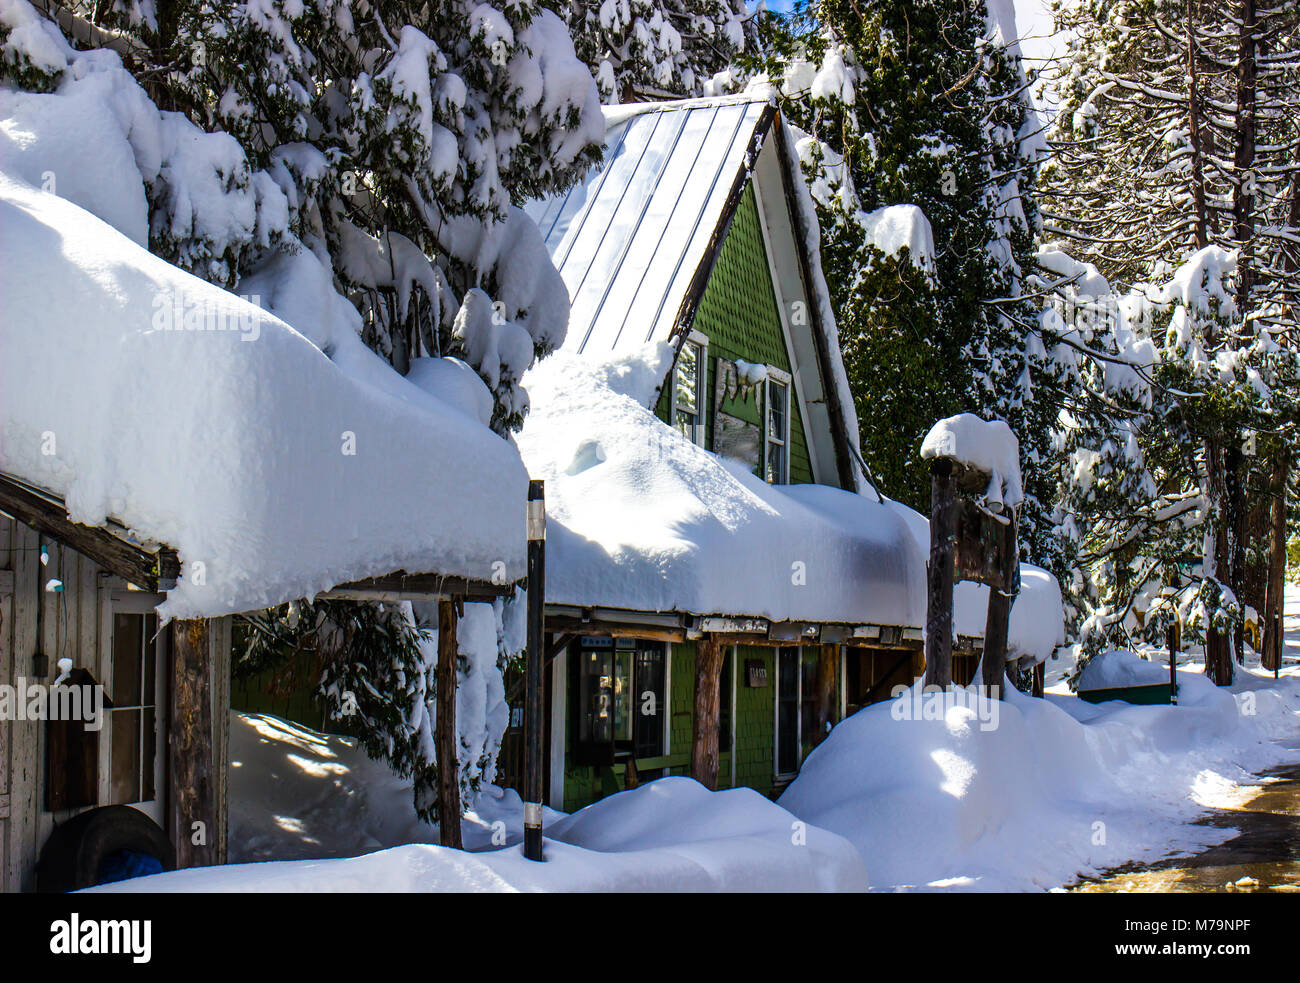 Mountain Building With Snow Heaped On Roof Stock Photo